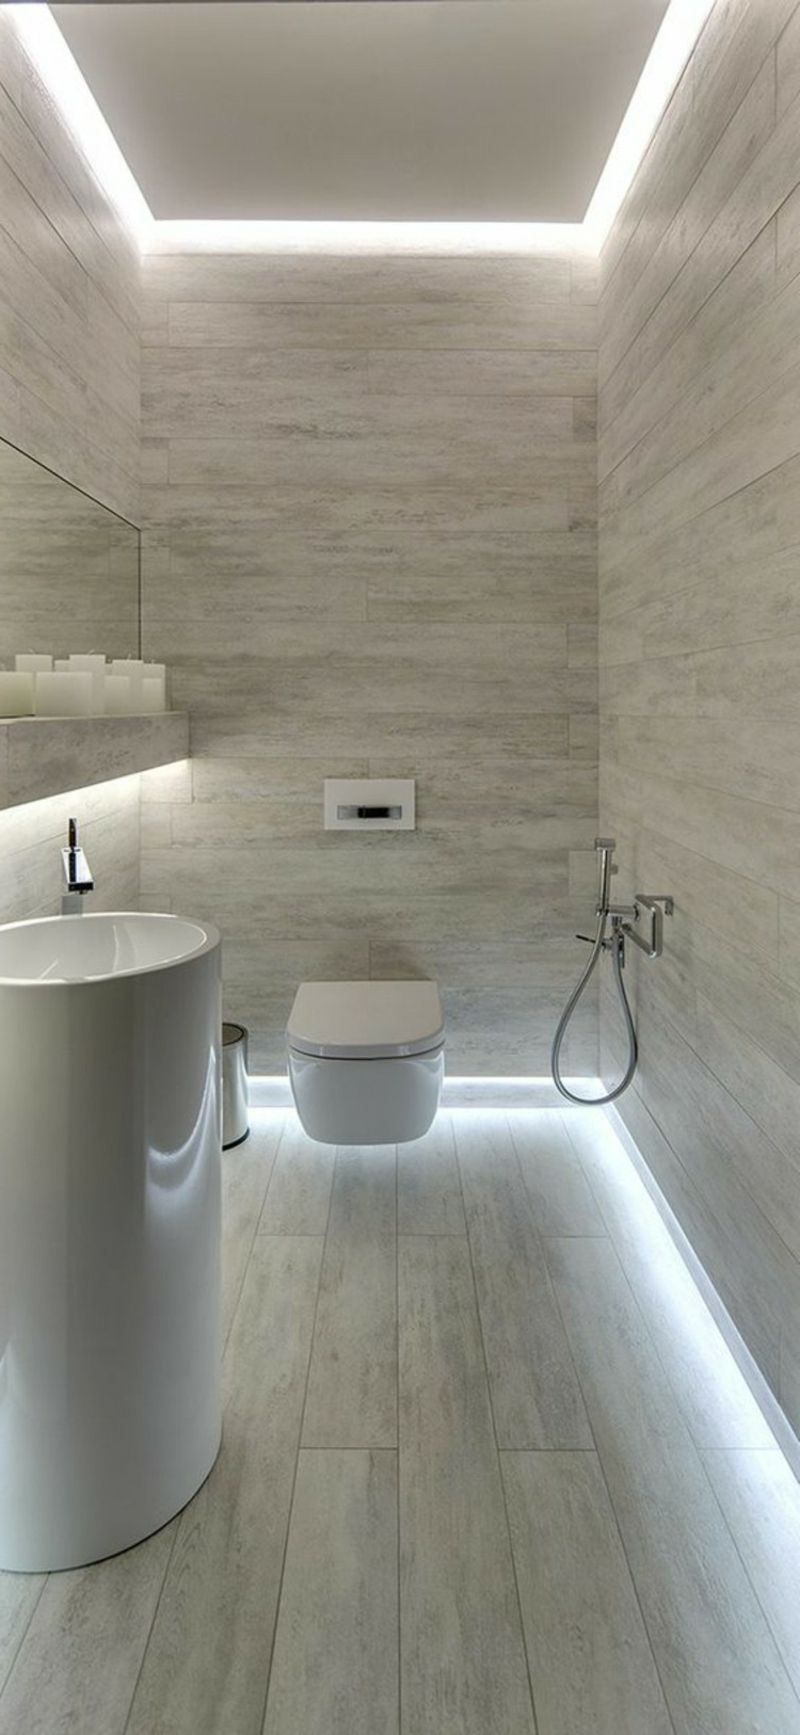 Indirekte Beleuchtung Led Bad Beautiful Bathroom Designs Modern Bathroom Design Ceiling